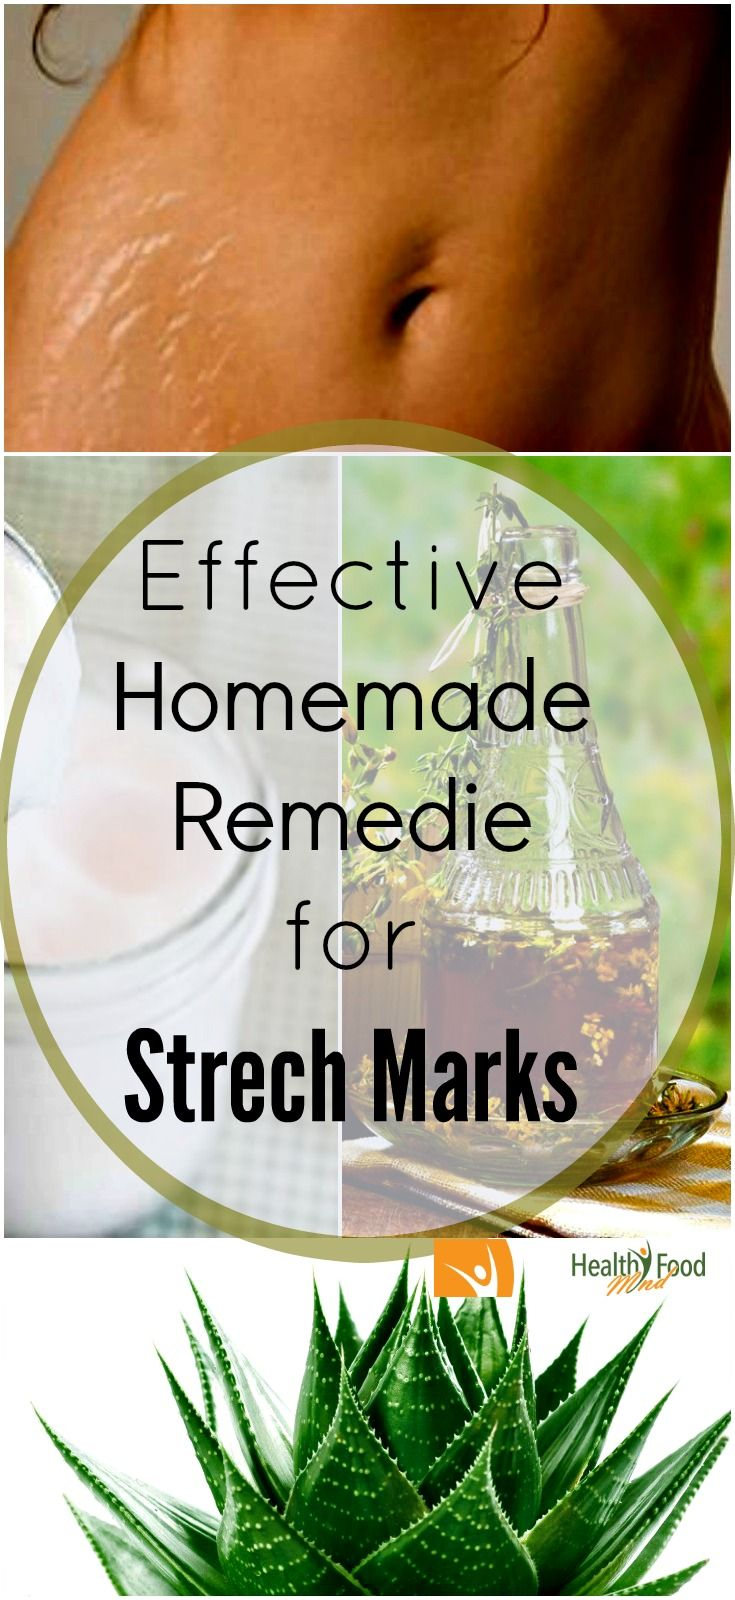 Home Remedies For Strech Marks